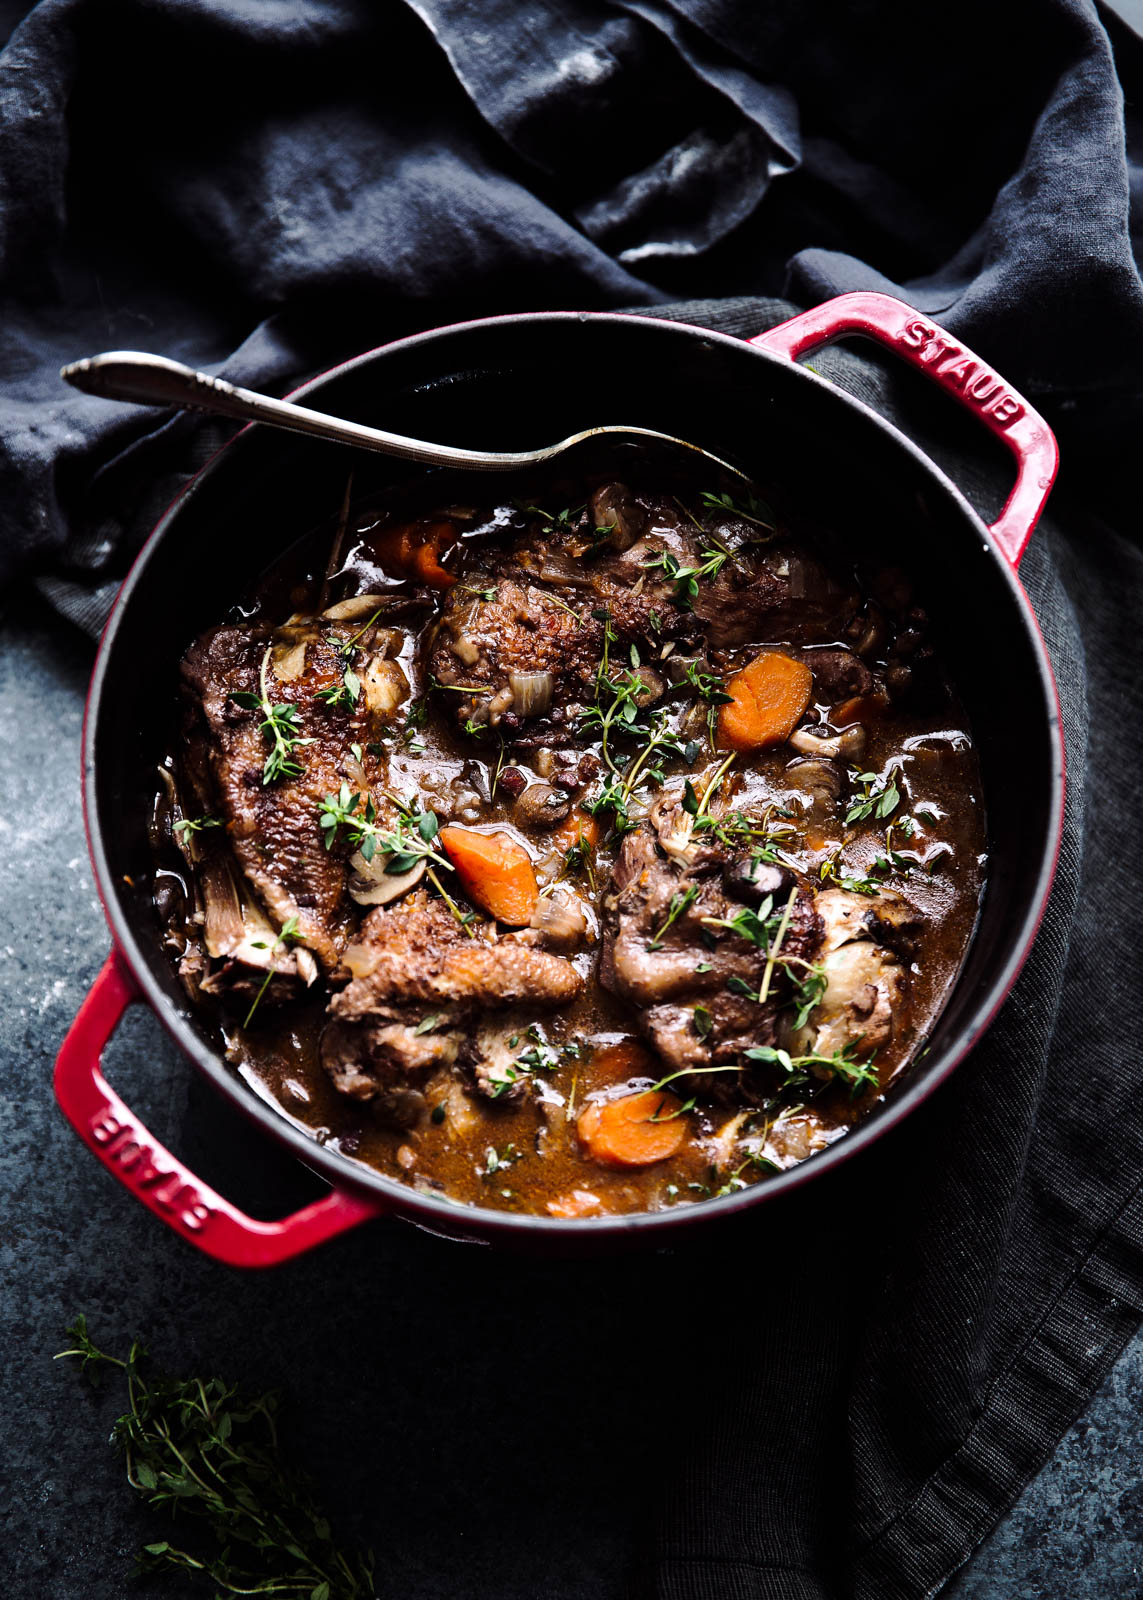 Coq Au Vin in large dutch oven